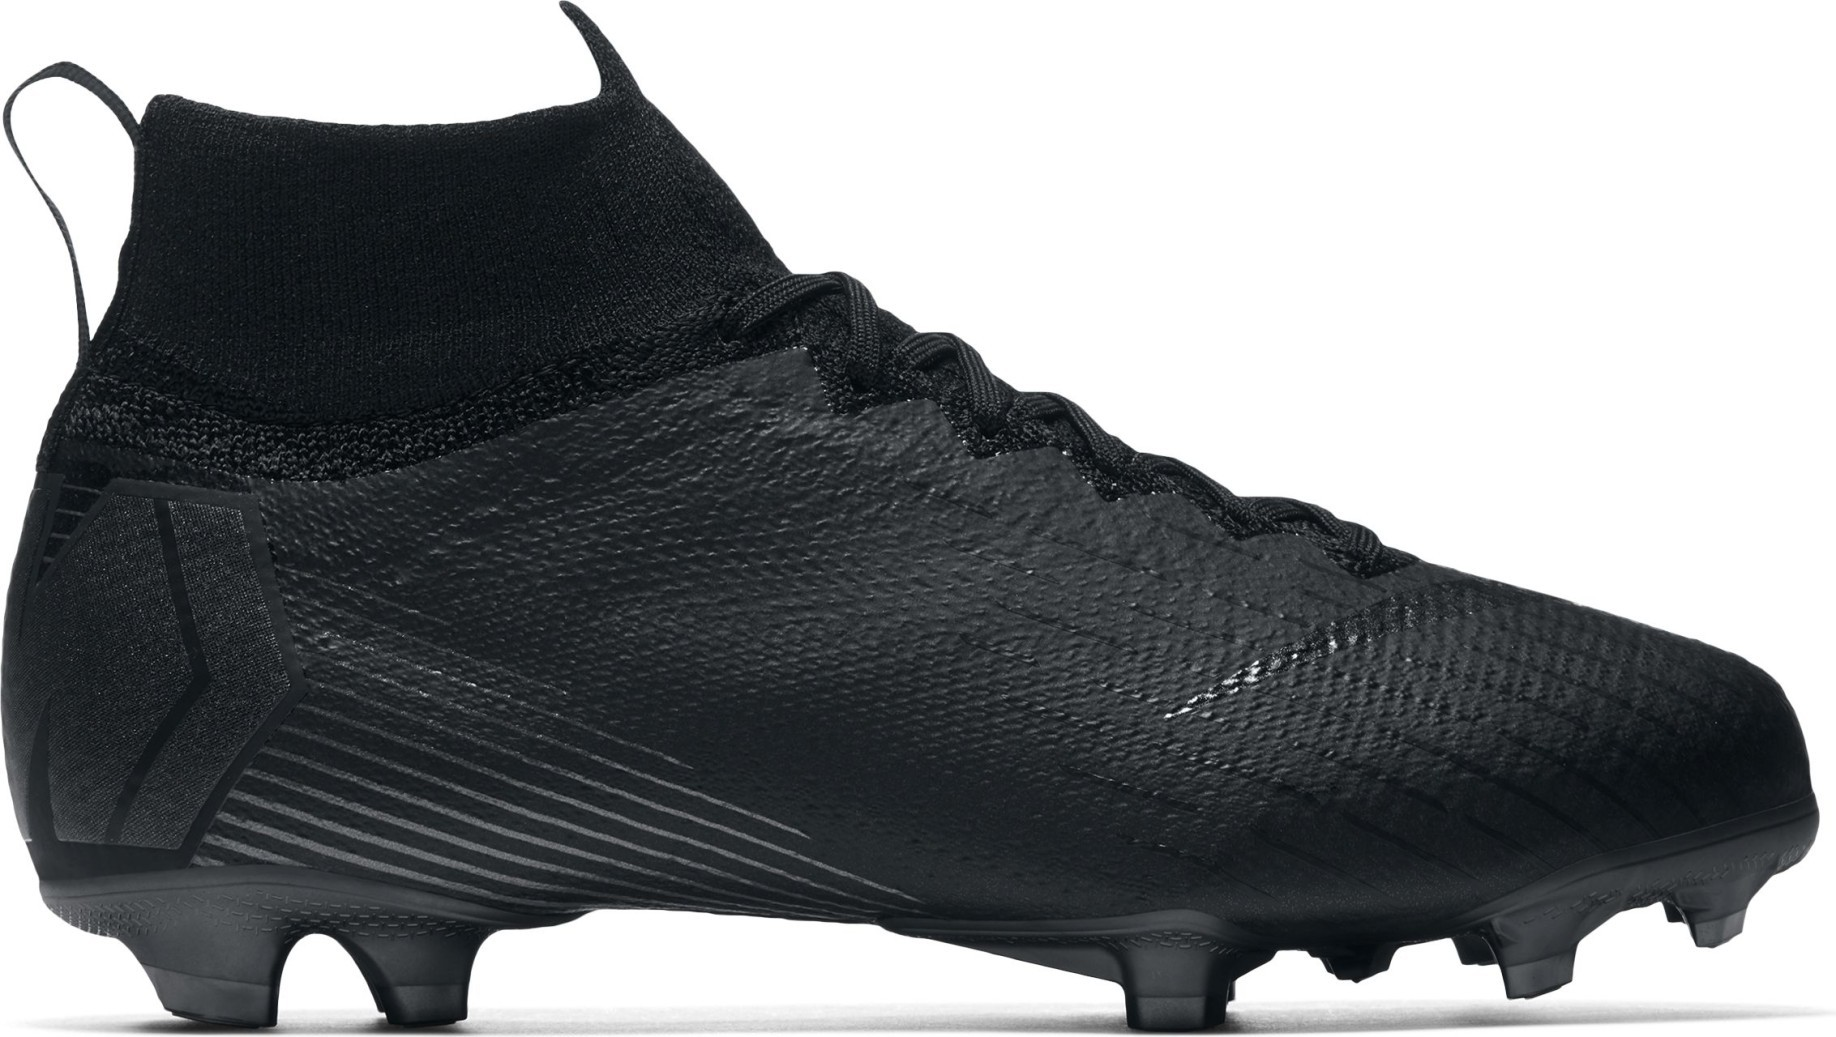 884ed5f96 Soccer shoes Boy Nike Mercurial Superfly VI Elite FG Stealth OPS Pack  colore Black - Nike - SportIT.com